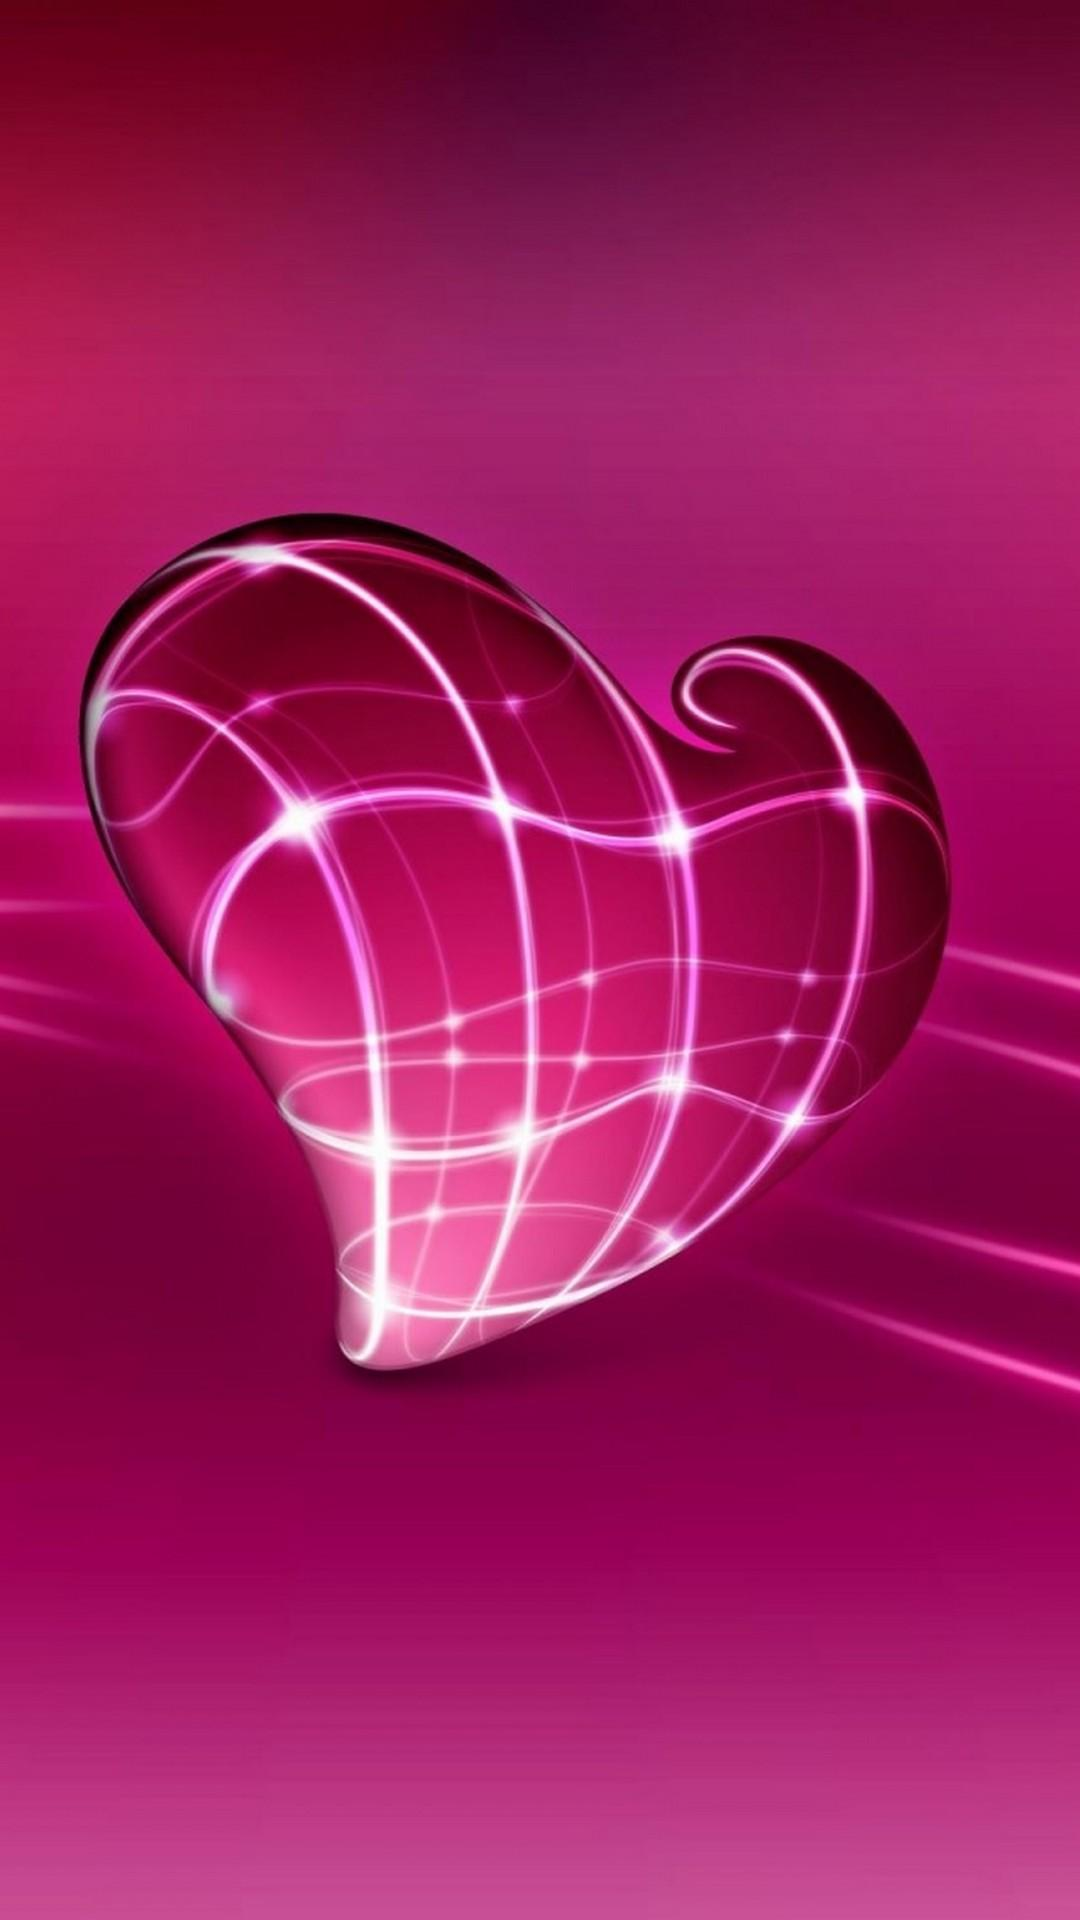 Colorful Heart Android Wallpapers - Wallpaper Cave